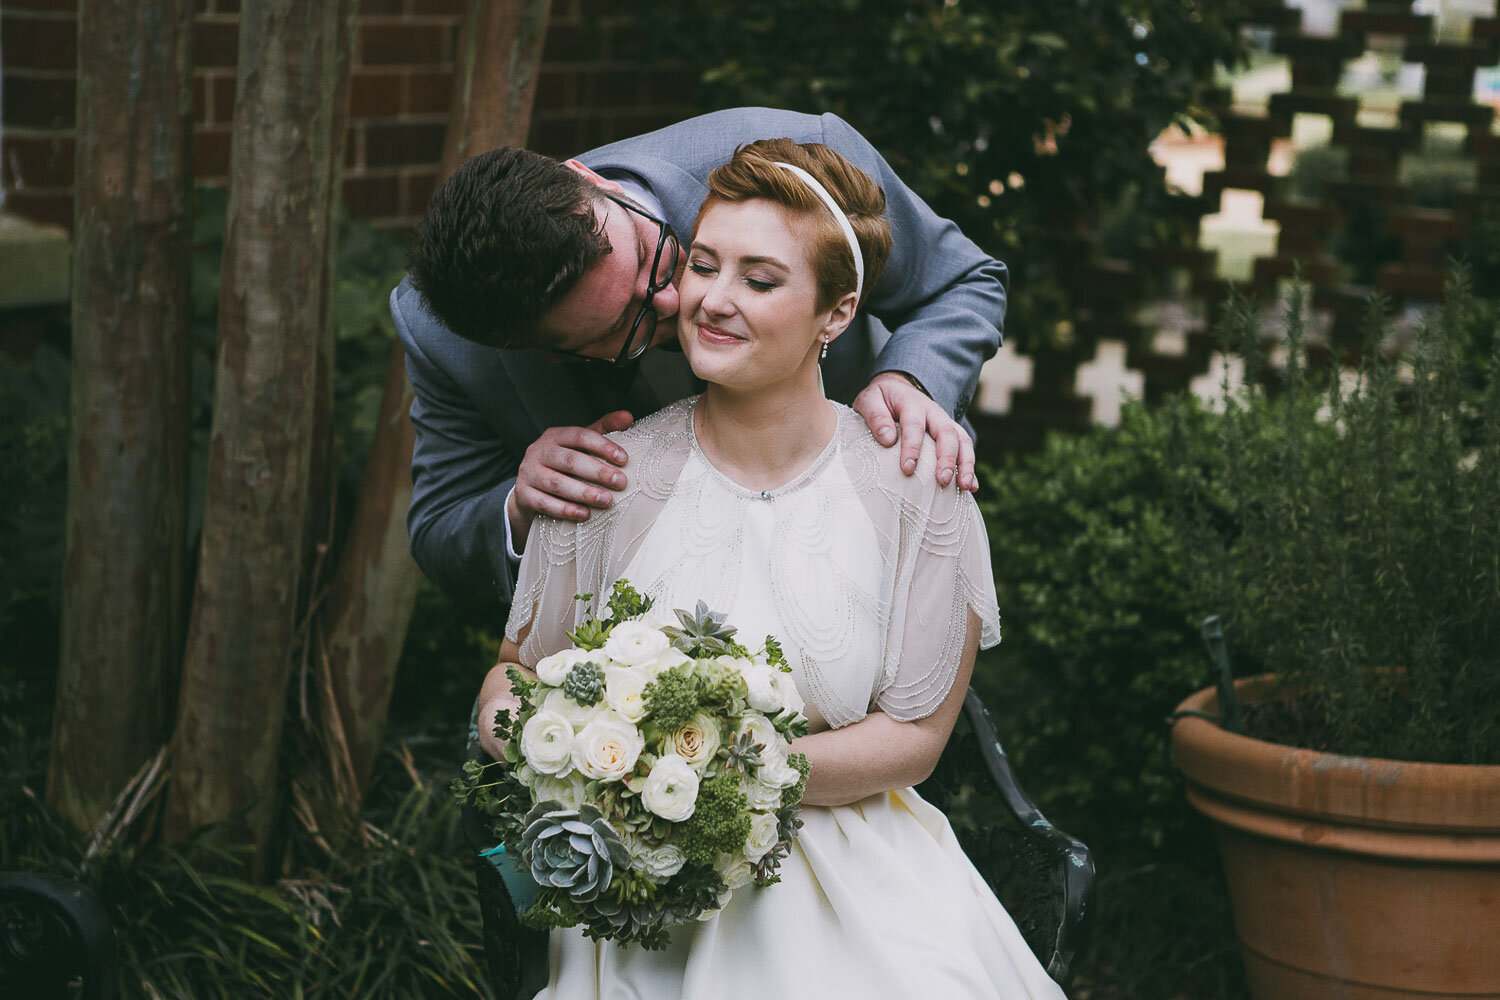 Boise, Idaho wedding photography and elopement photography pricing info.